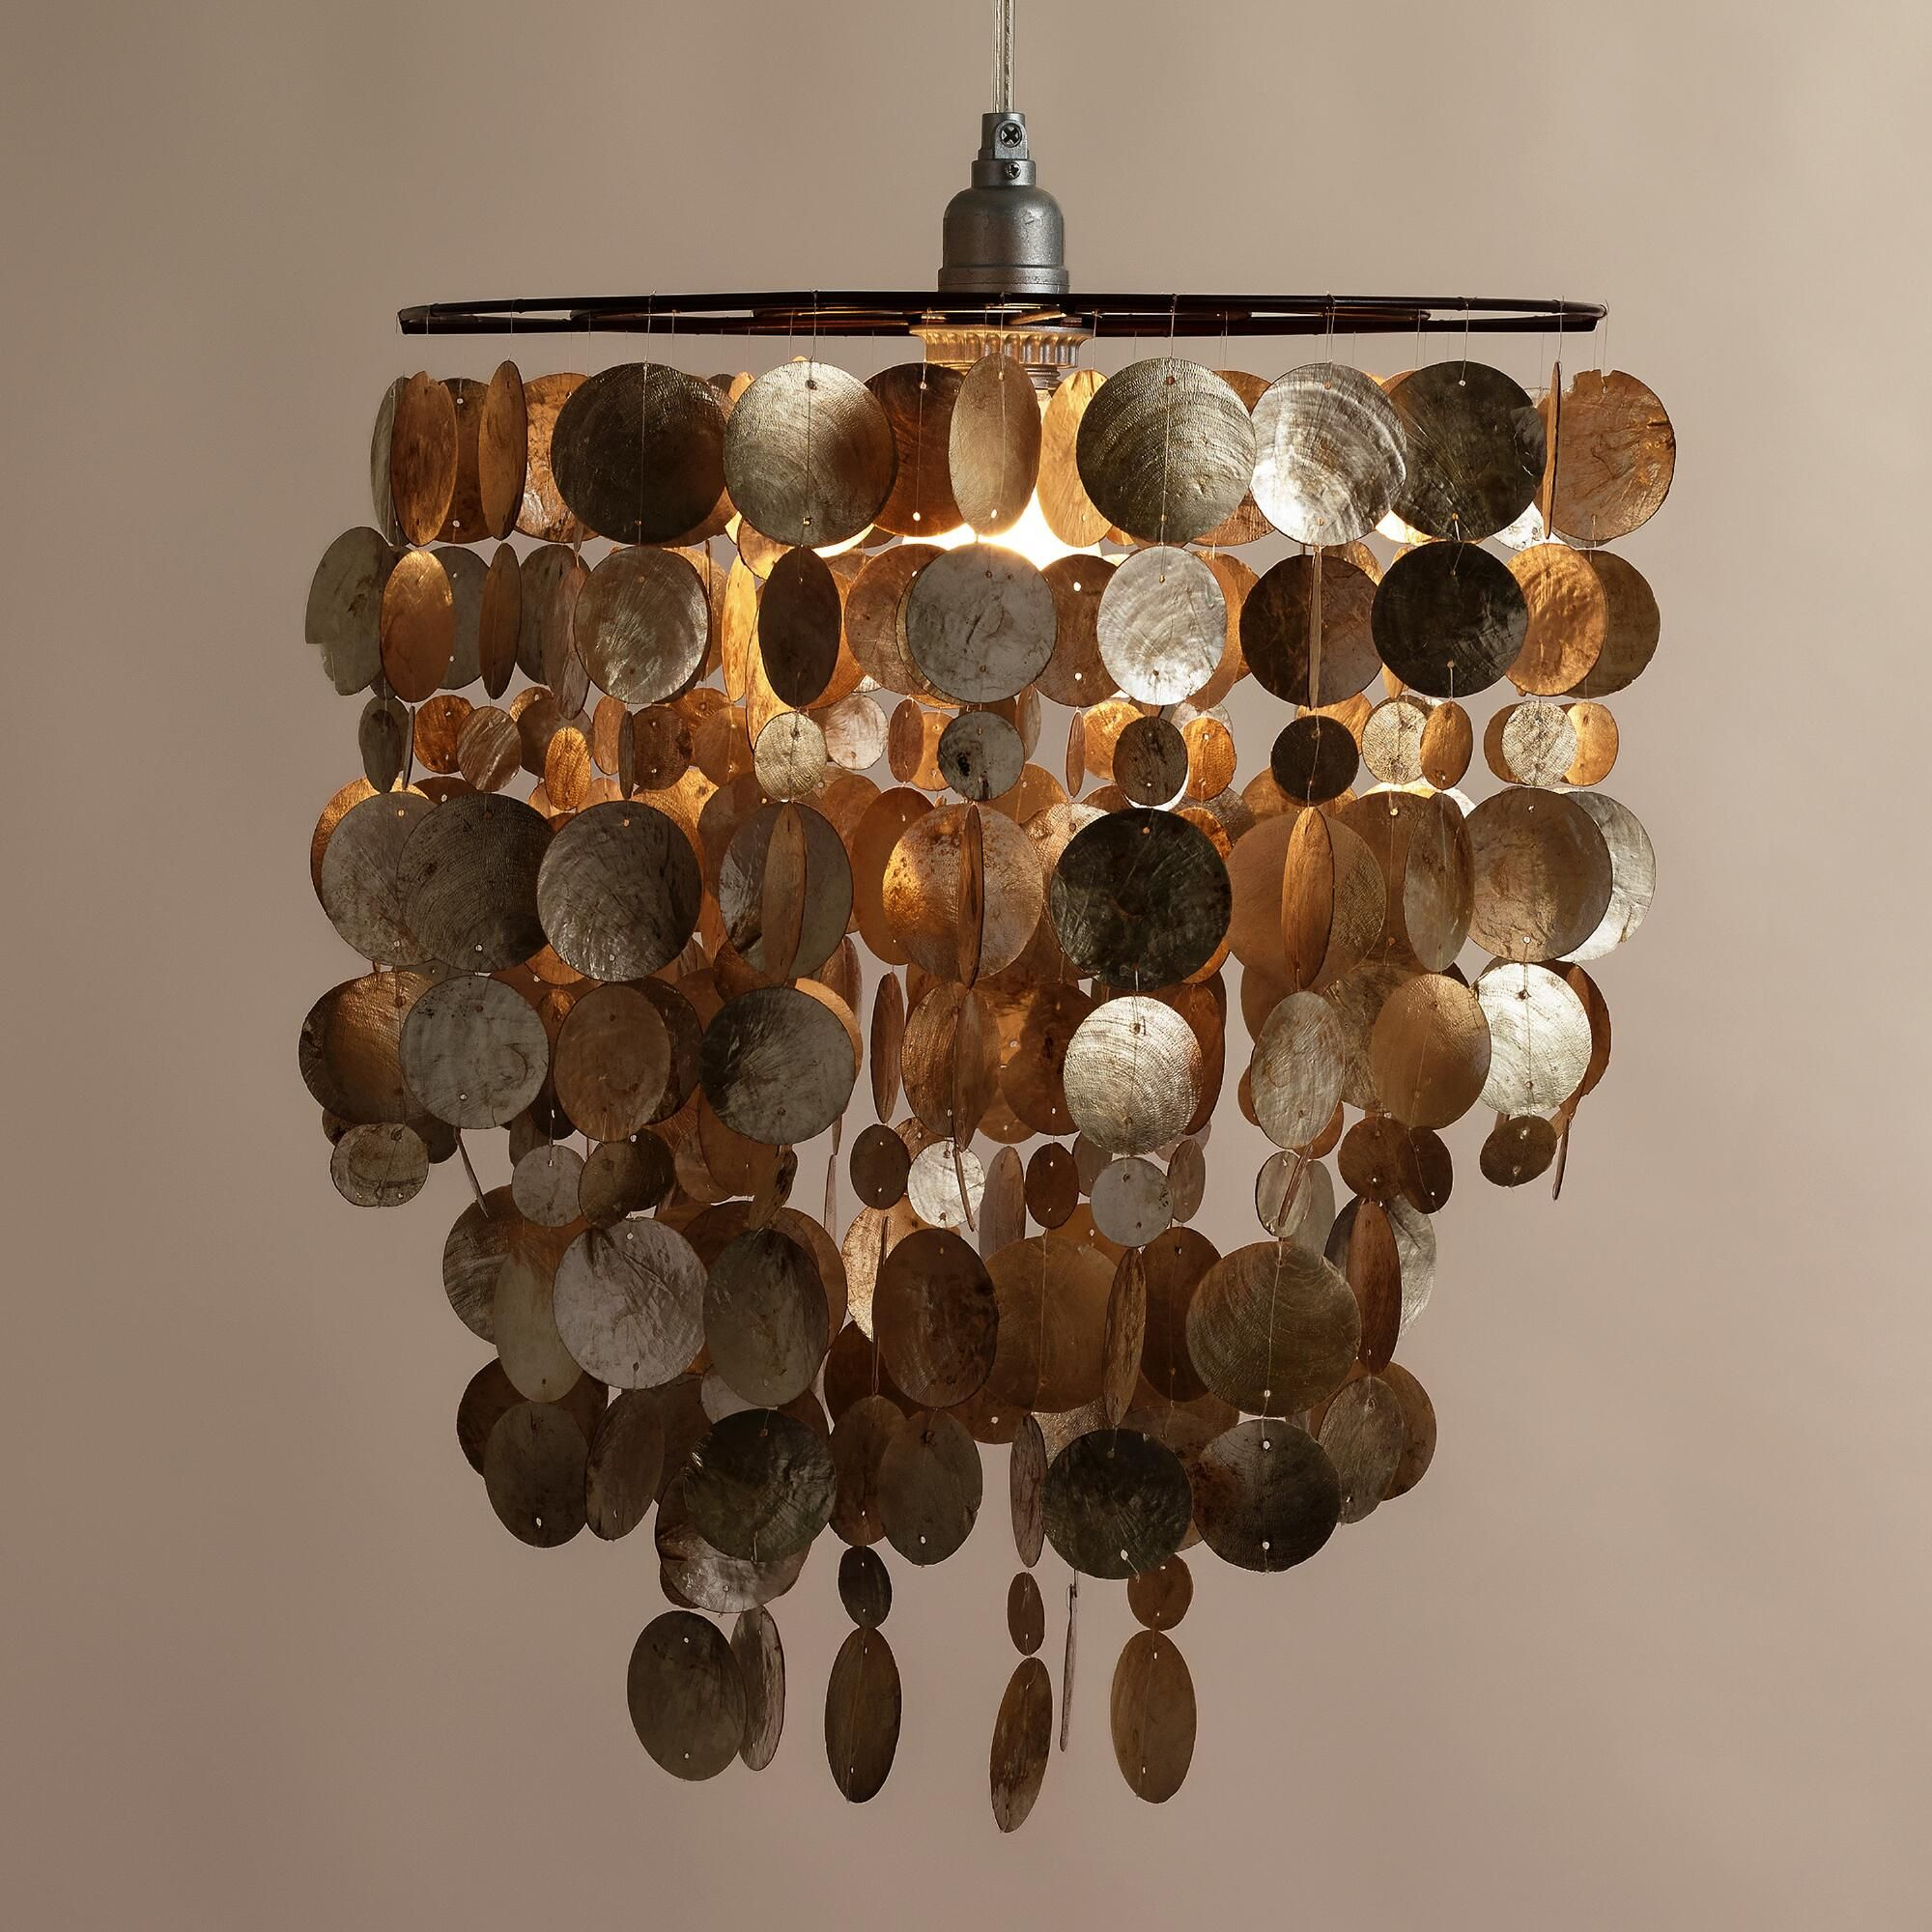 The dramatic ring of softly iridescent shells on our capiz hanging the dramatic ring of softly iridescent shells on our capiz hanging pendant lantern creates a soothing mozeypictures Image collections